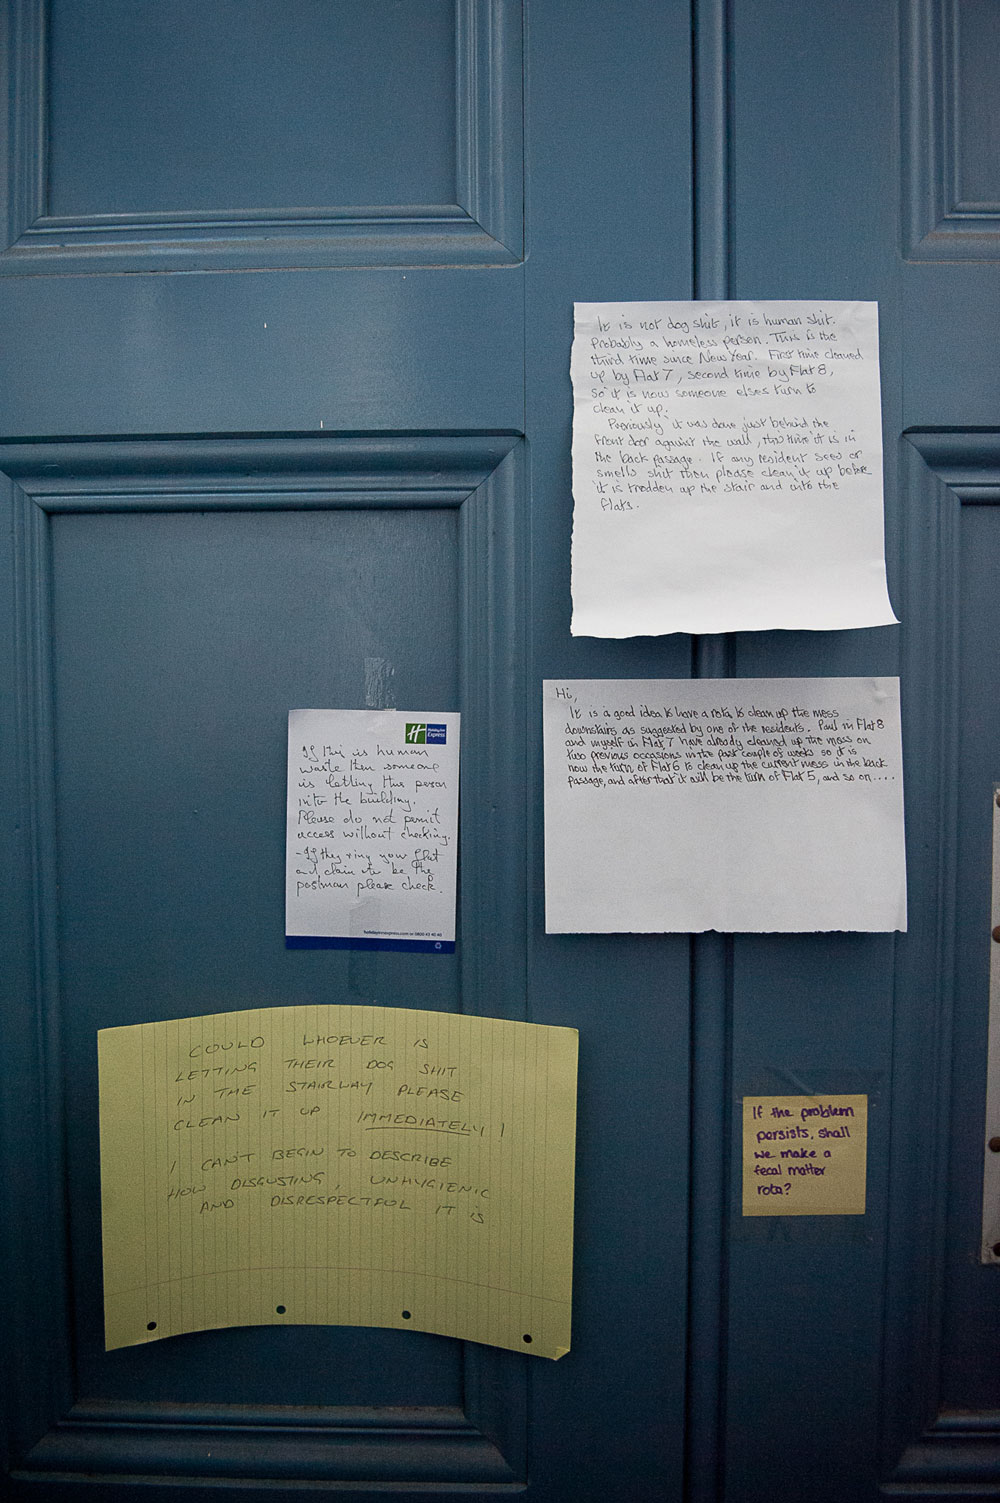 The selection of notes on the back of the door